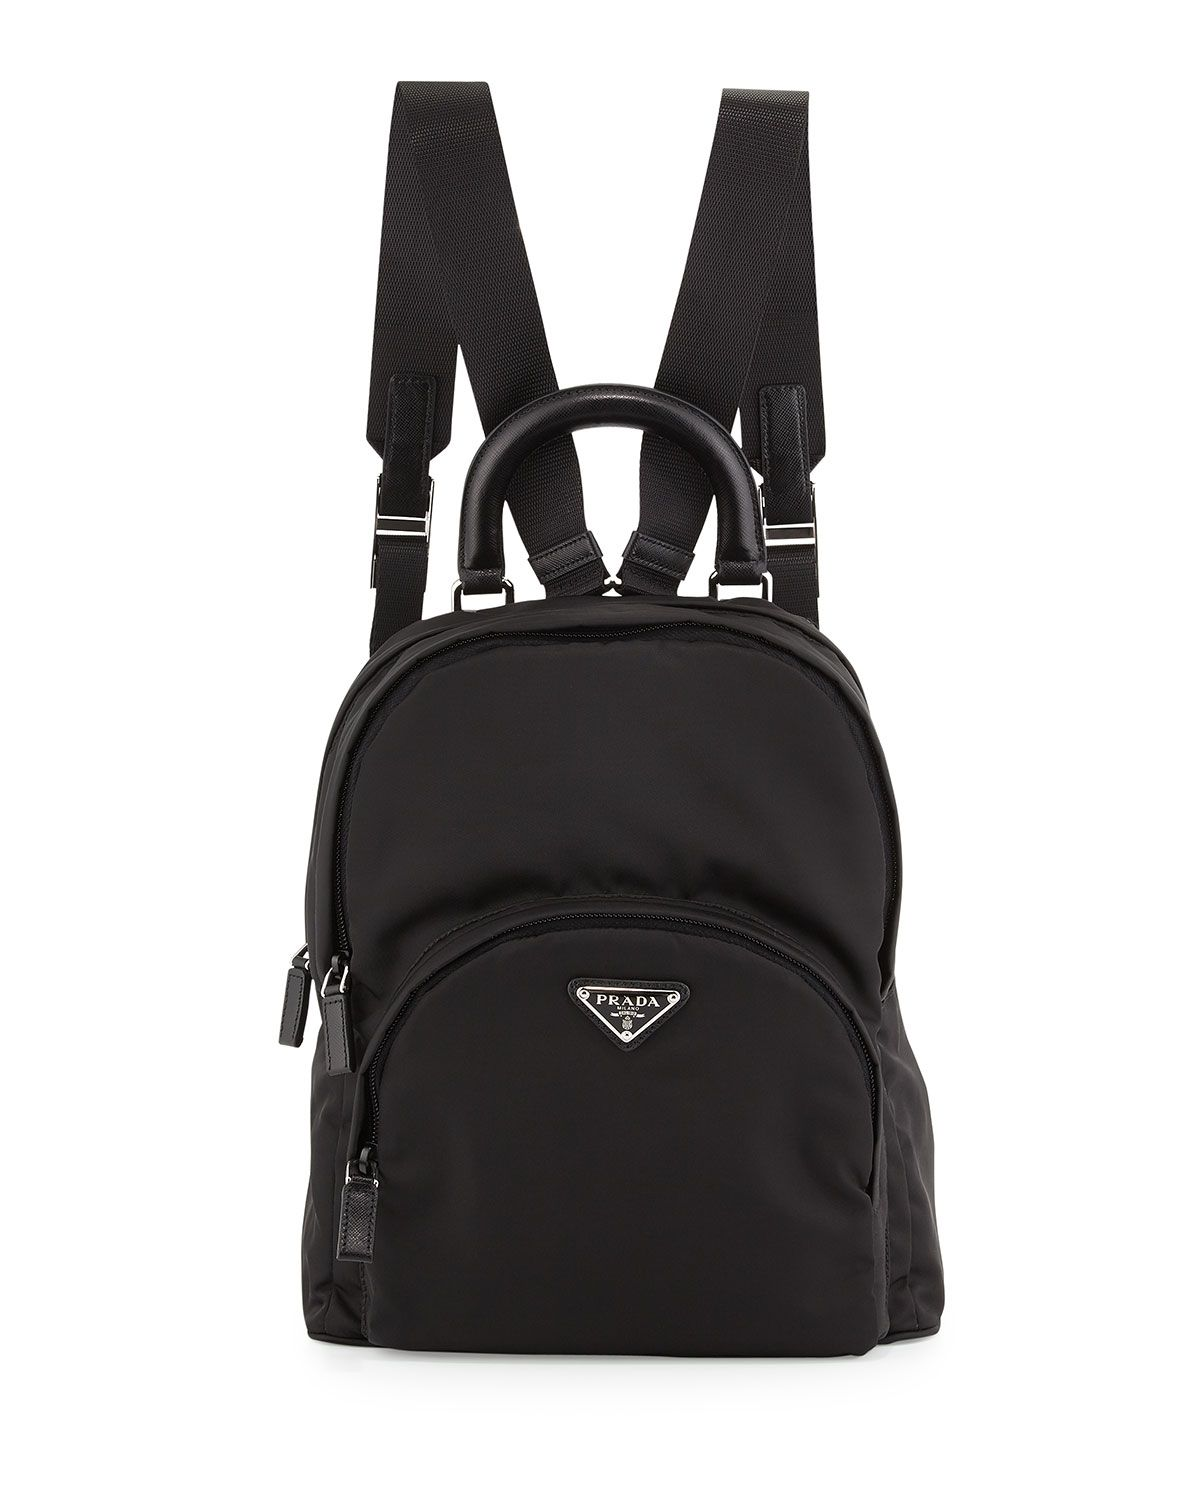 ff4e8ca6a419 Nylon Medium Dome Backpack Black (Nero) in 2019